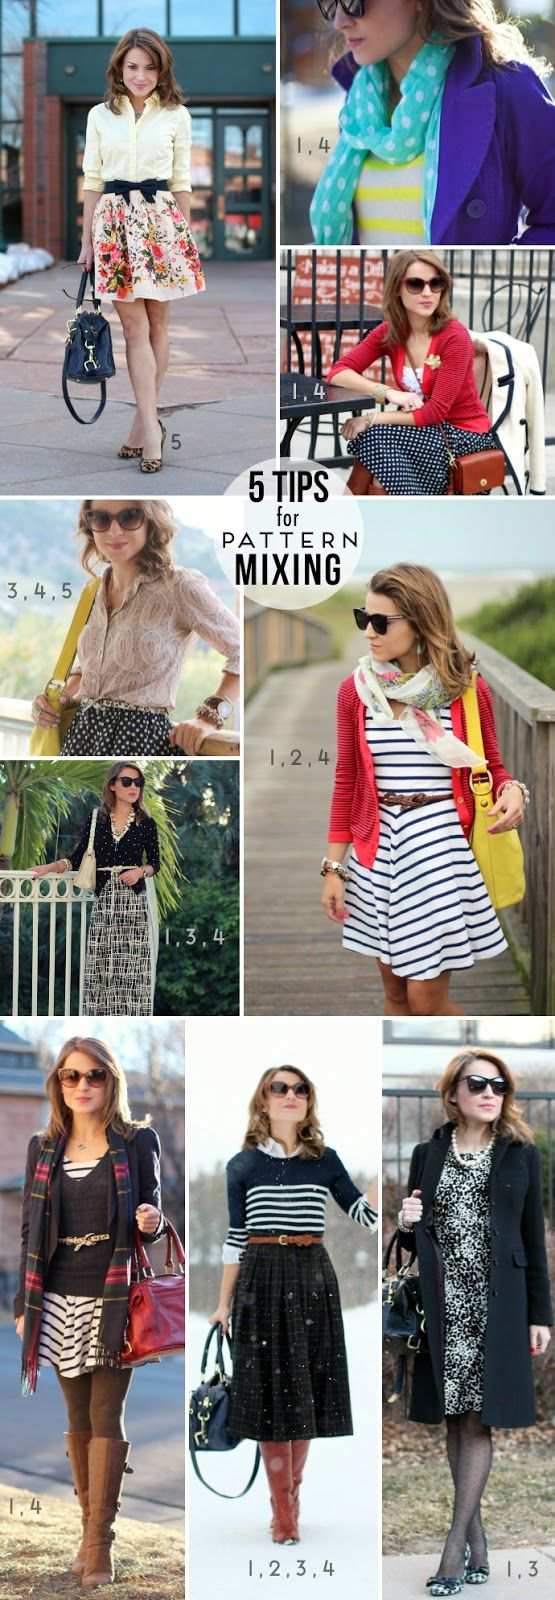 5 Tips for Painless Pattern-Mixing. Love 'em.